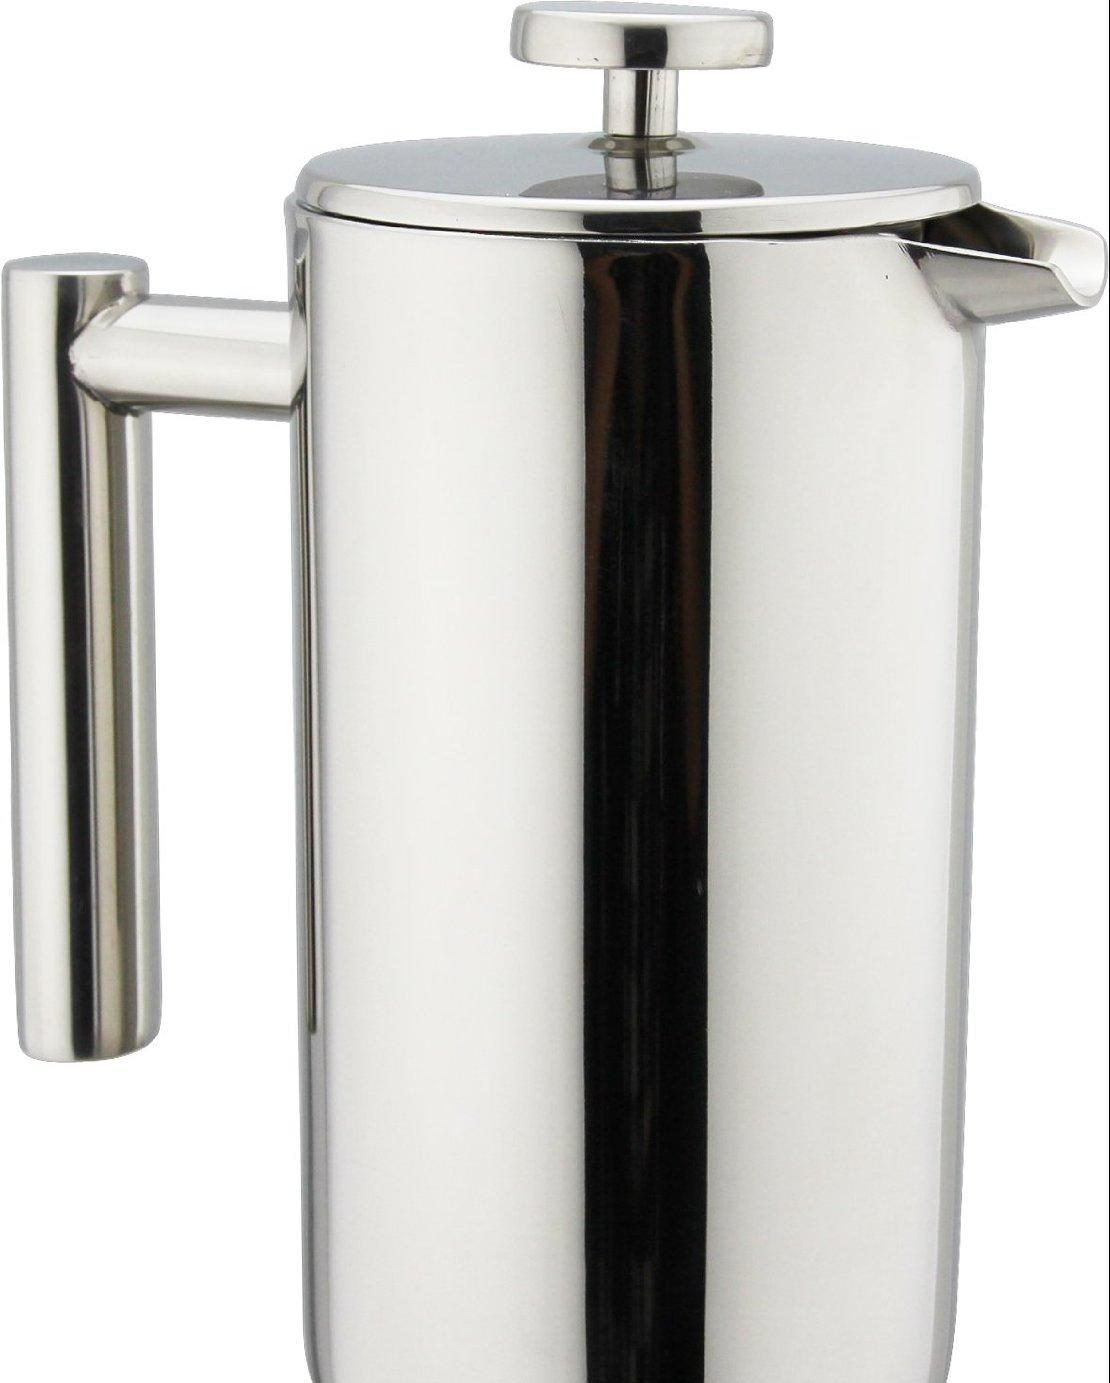 Kuissential 8 Cup Stainless Steel French Press